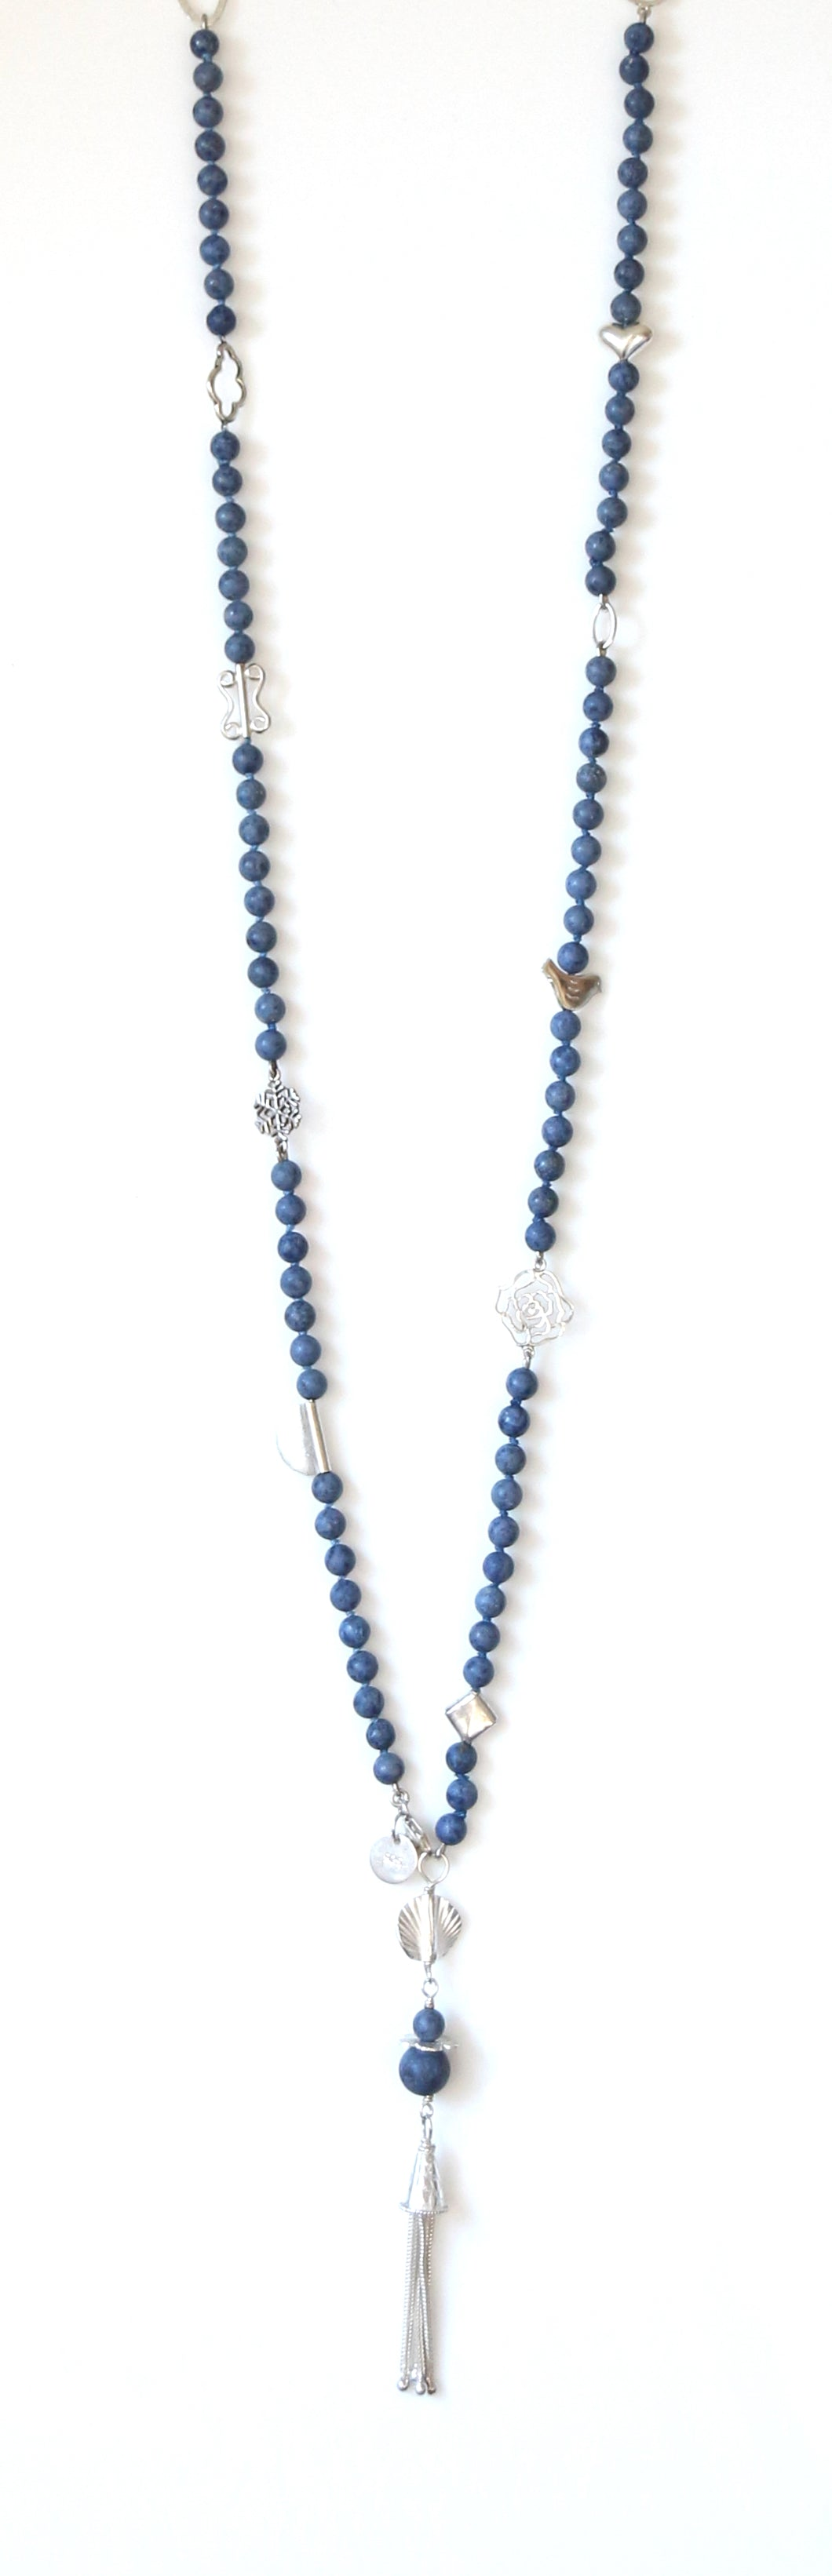 Australian Handmade Blue Long Tassel Necklace with Dumortierite and Sterling Silver